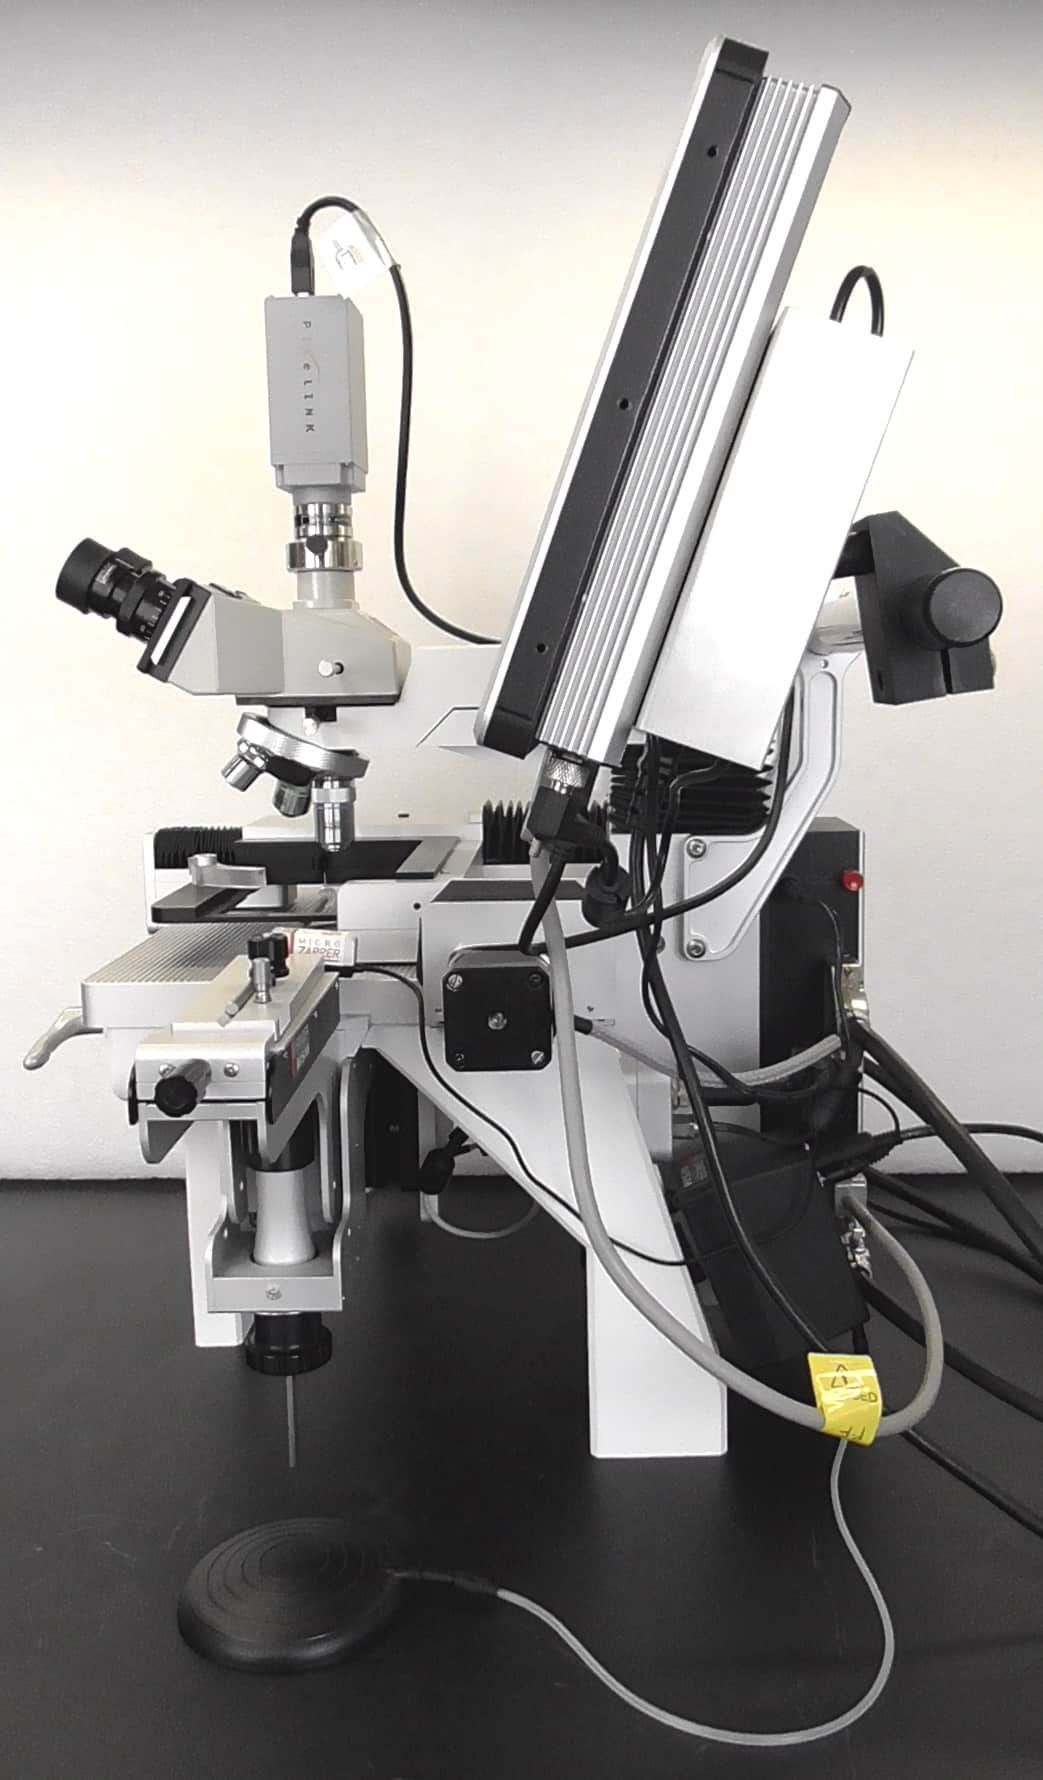 Singer Instruments MSM 400 Dissection Microscope